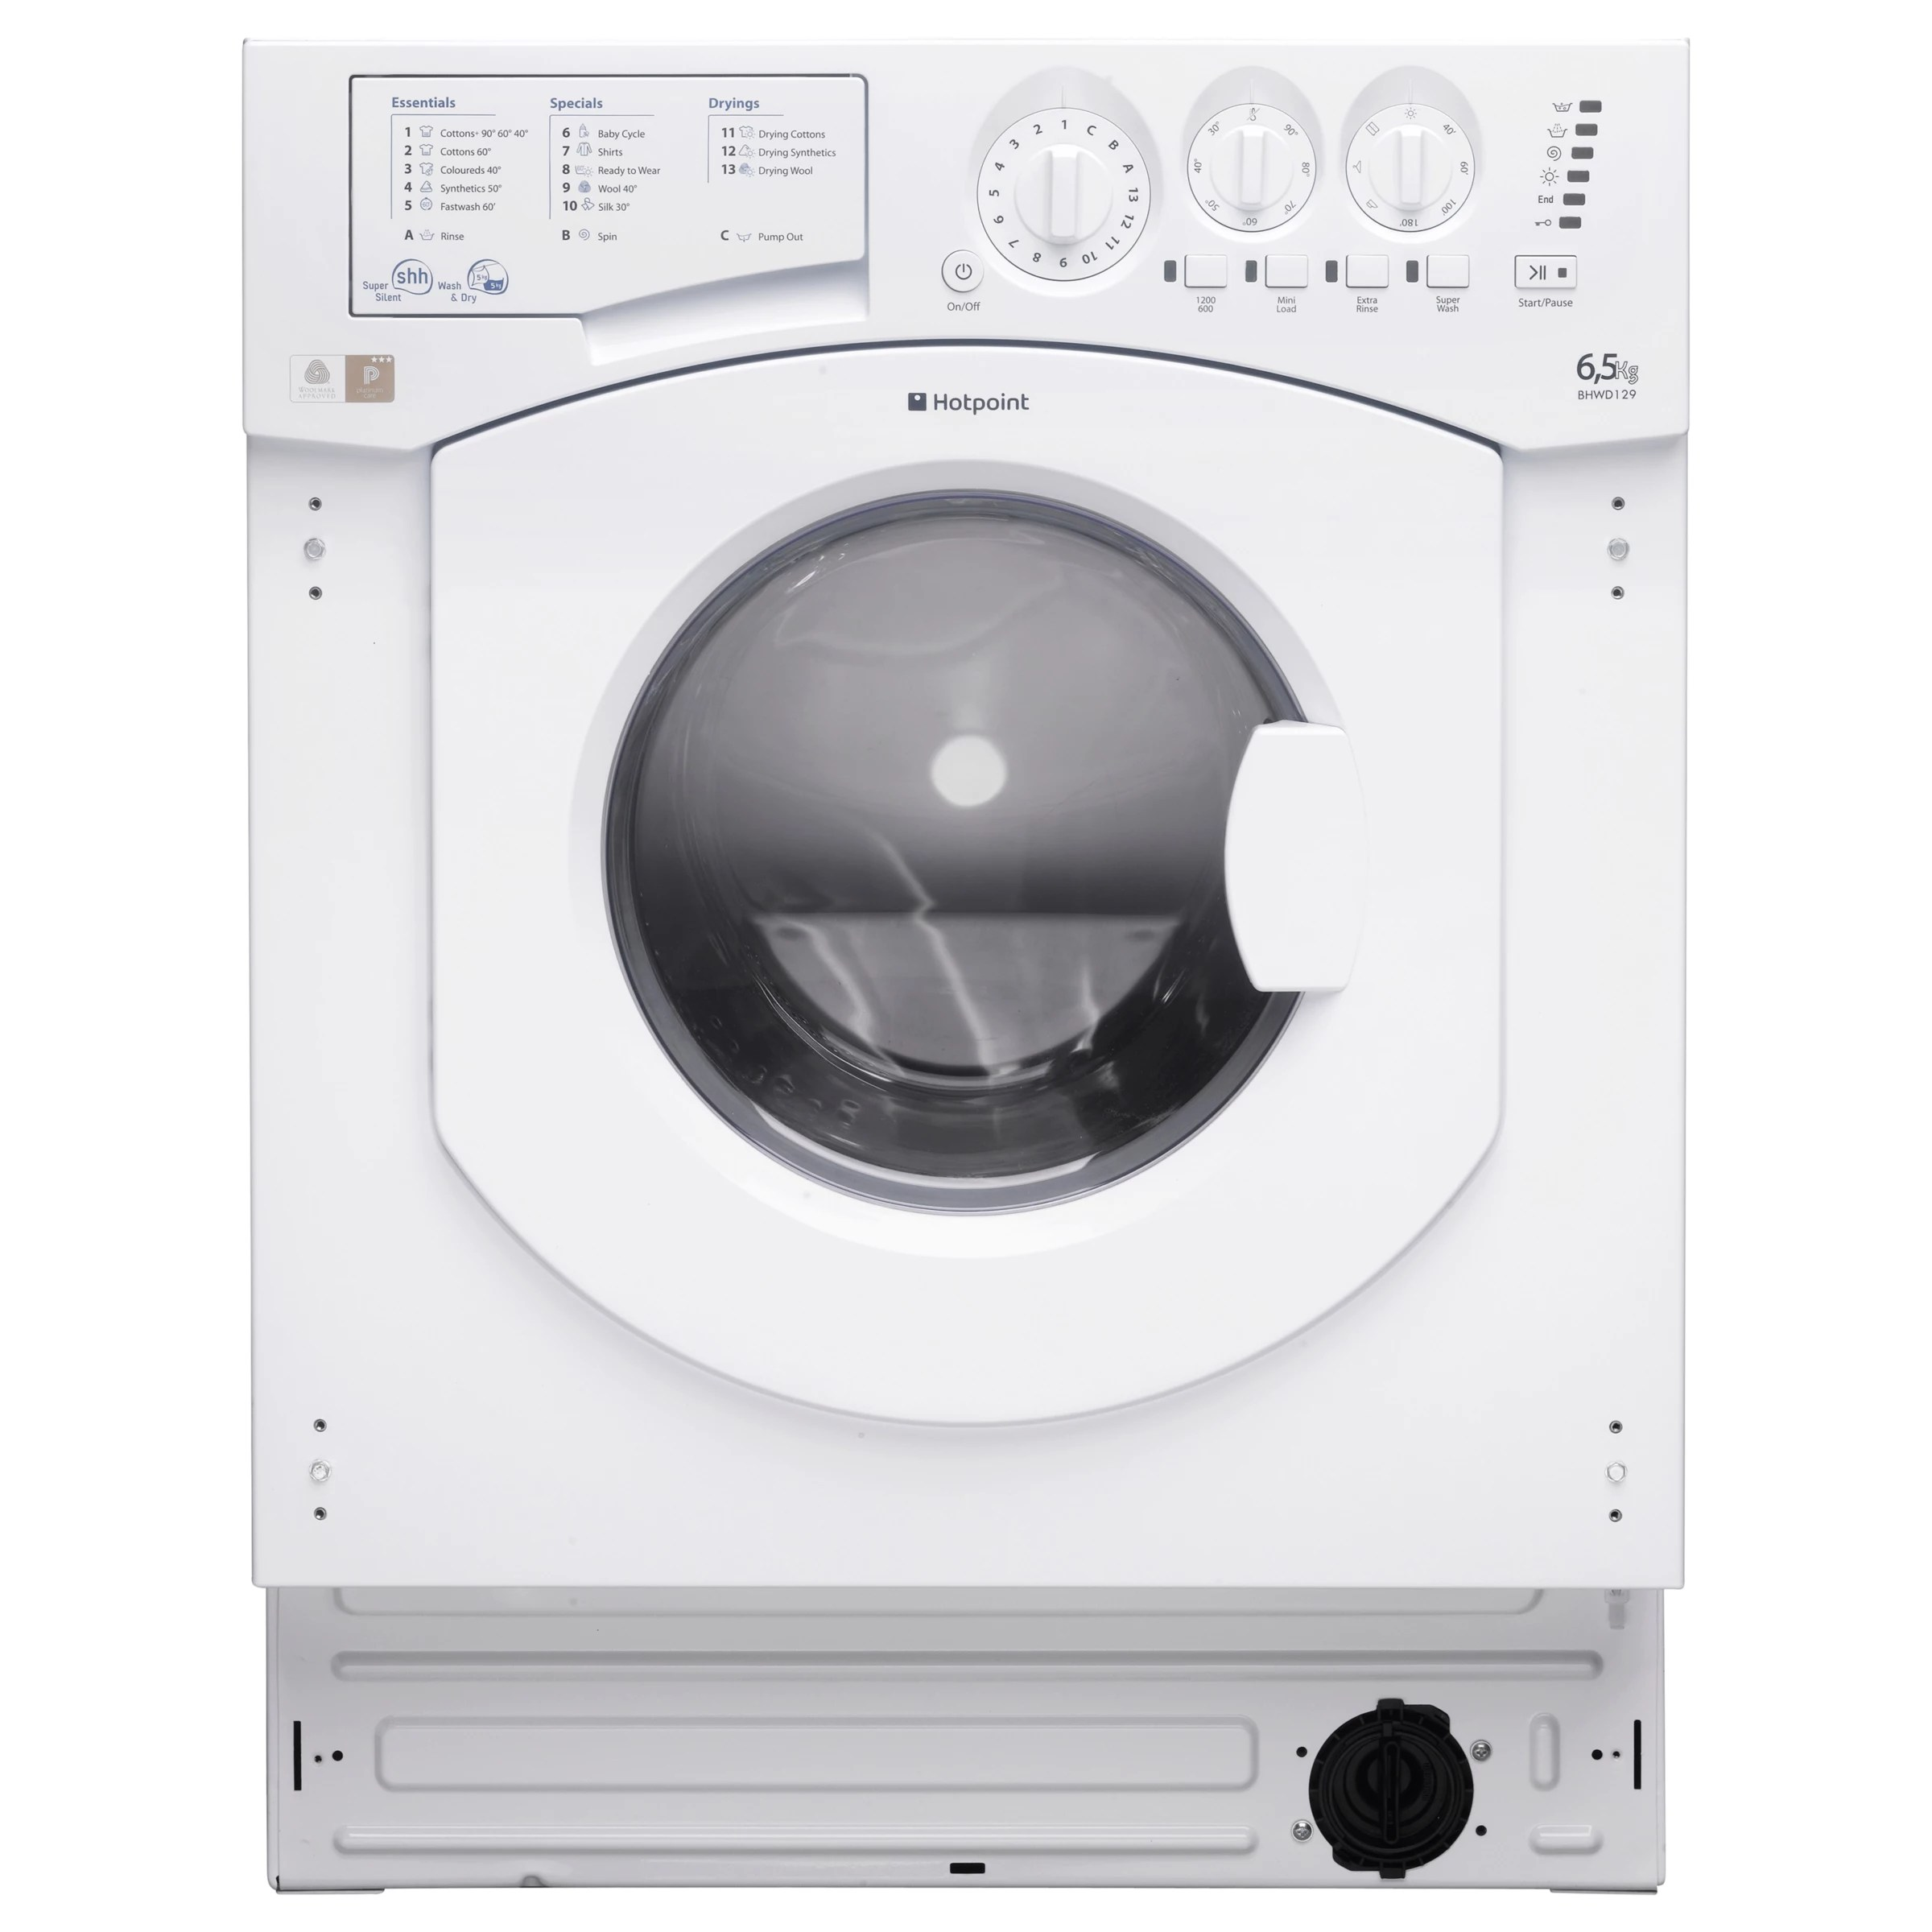 medium resolution of buy hotpoint bhwd129 aquarius integrated washer dryer white online at johnlewis com